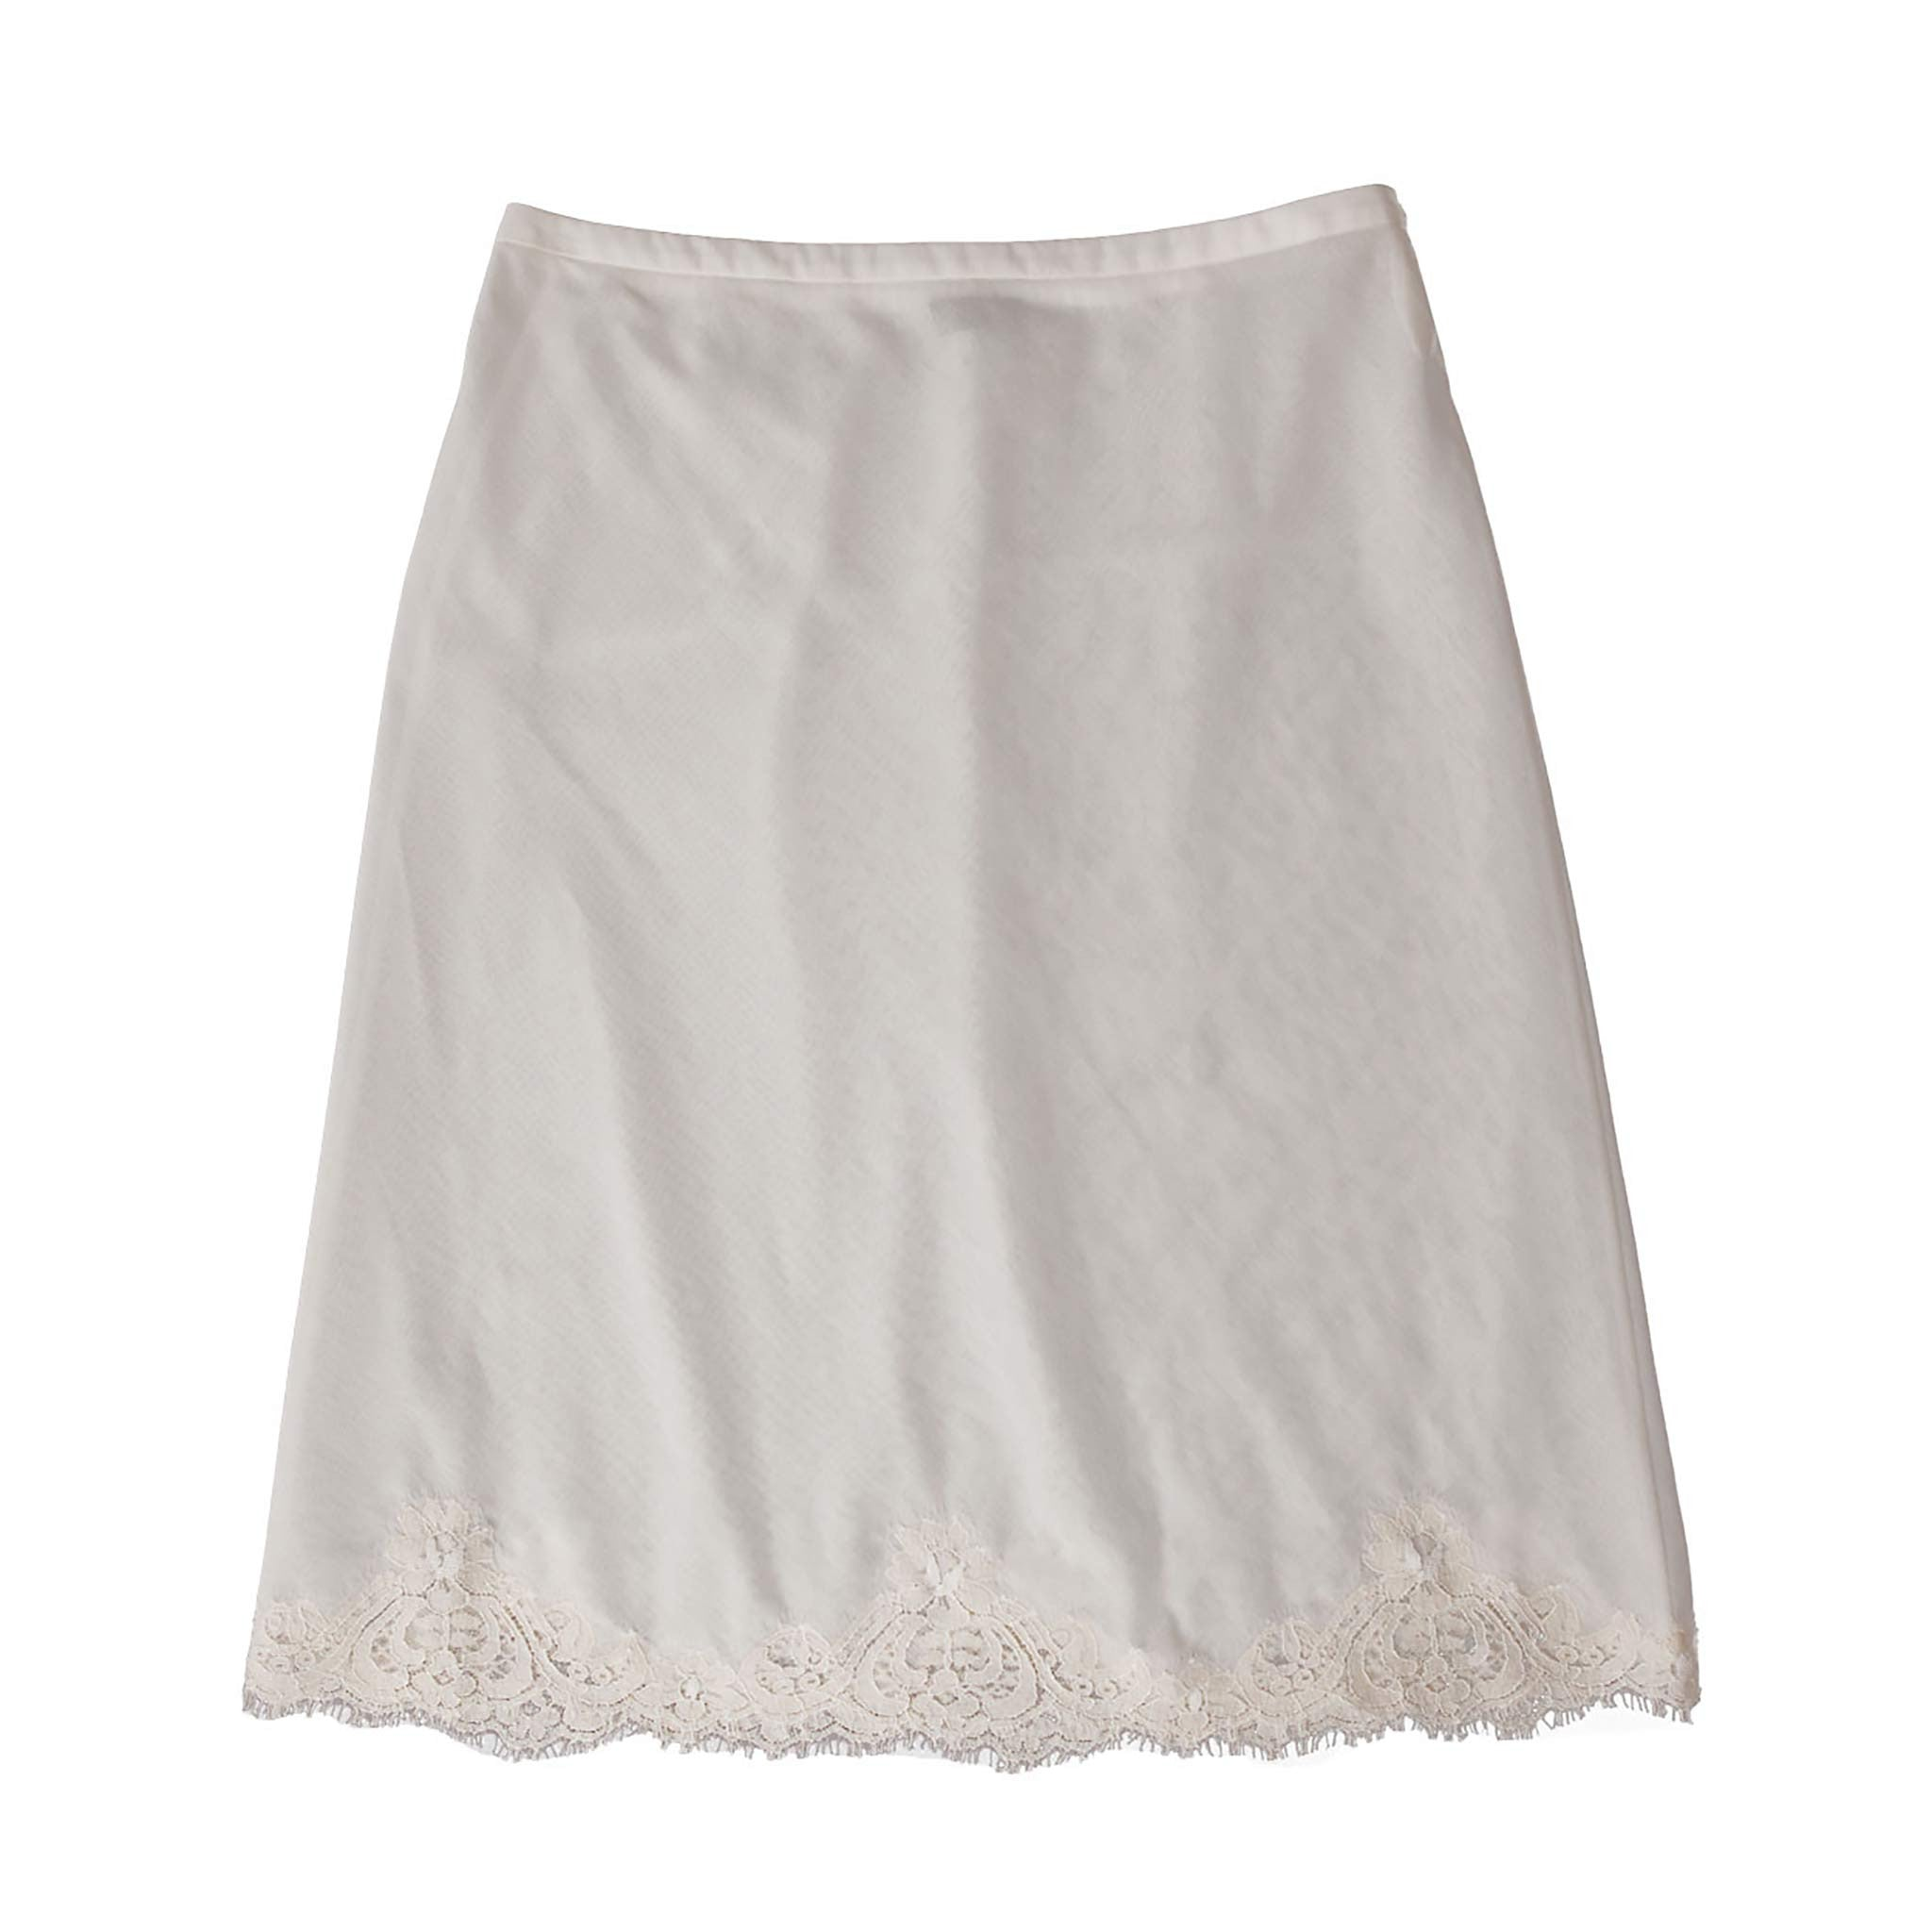 Kali Half Slip in Swiss Cotton Voile with Lace